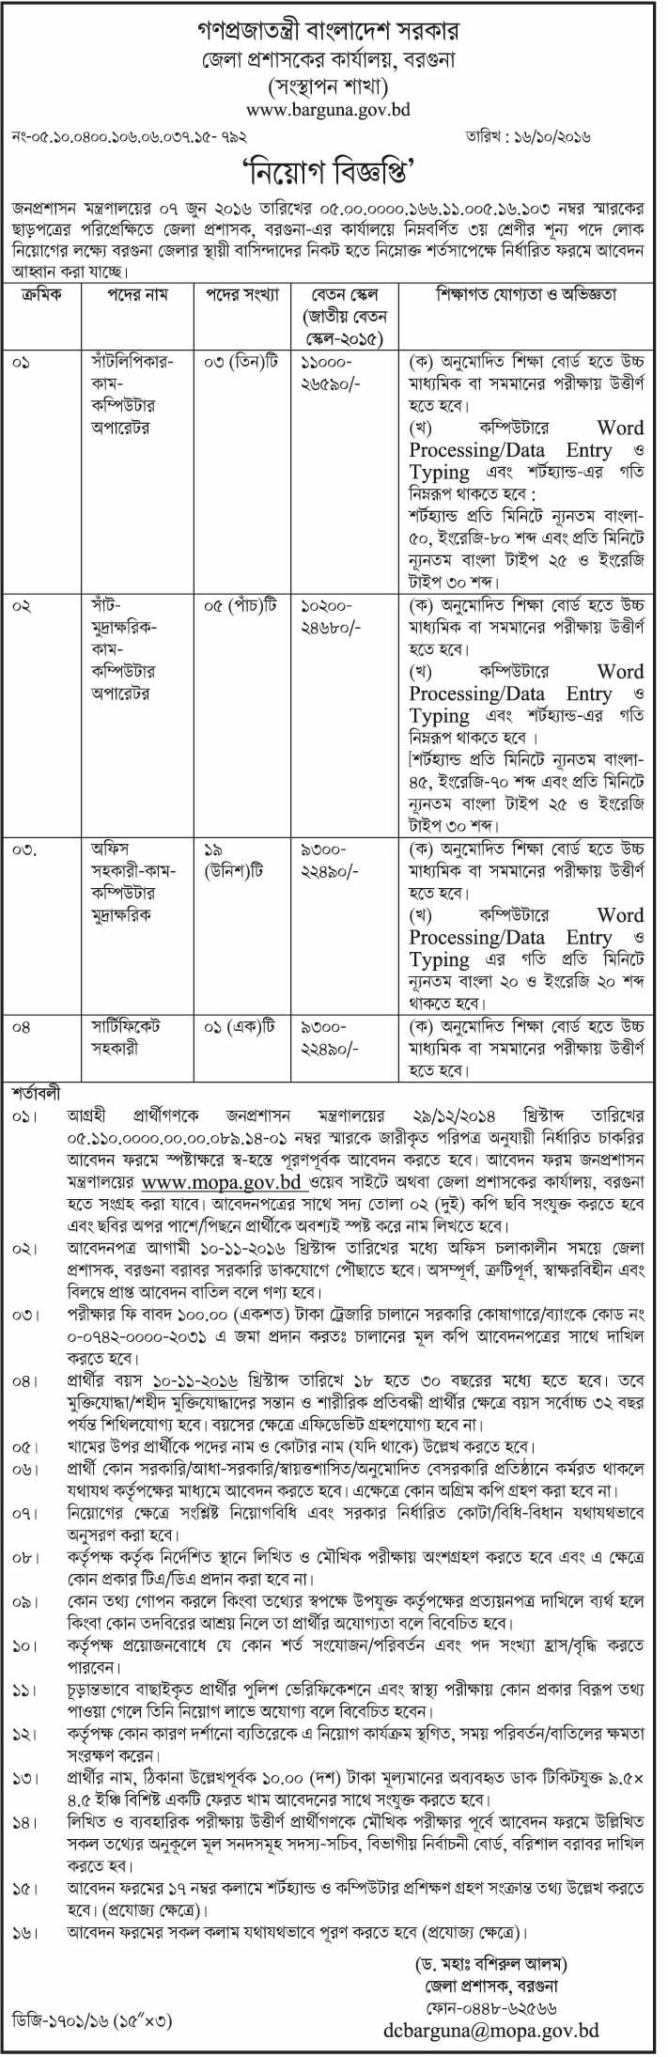 Barguna DC Office Govt Job Circular 2016